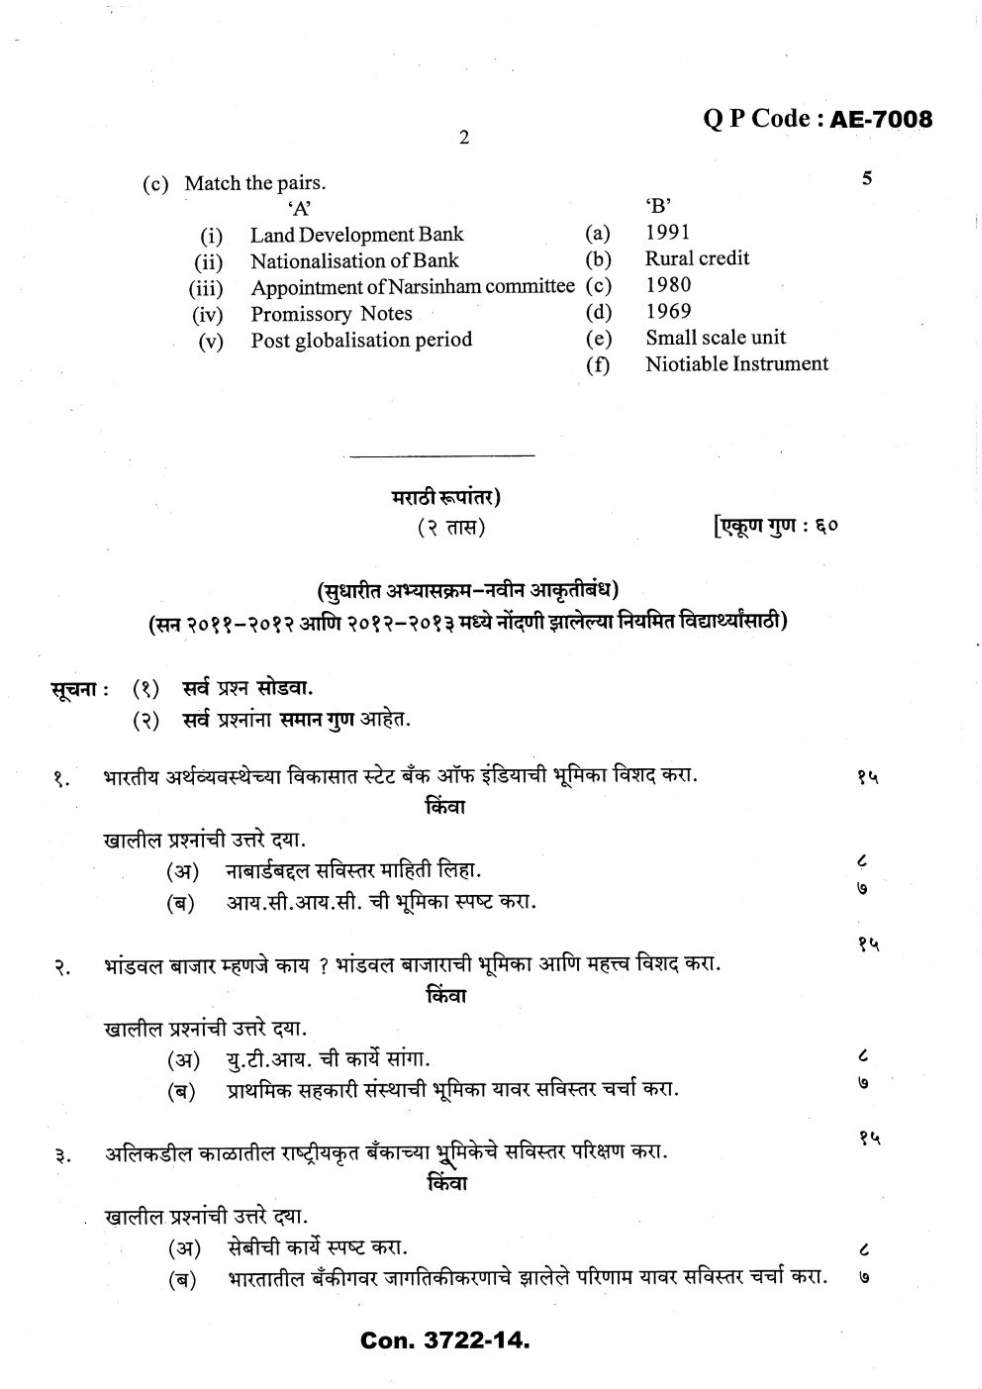 bsc it ques papers Check out the details of amu question papers download 2018 & model question papers pdf download here we have provided the information on the aligarh m.